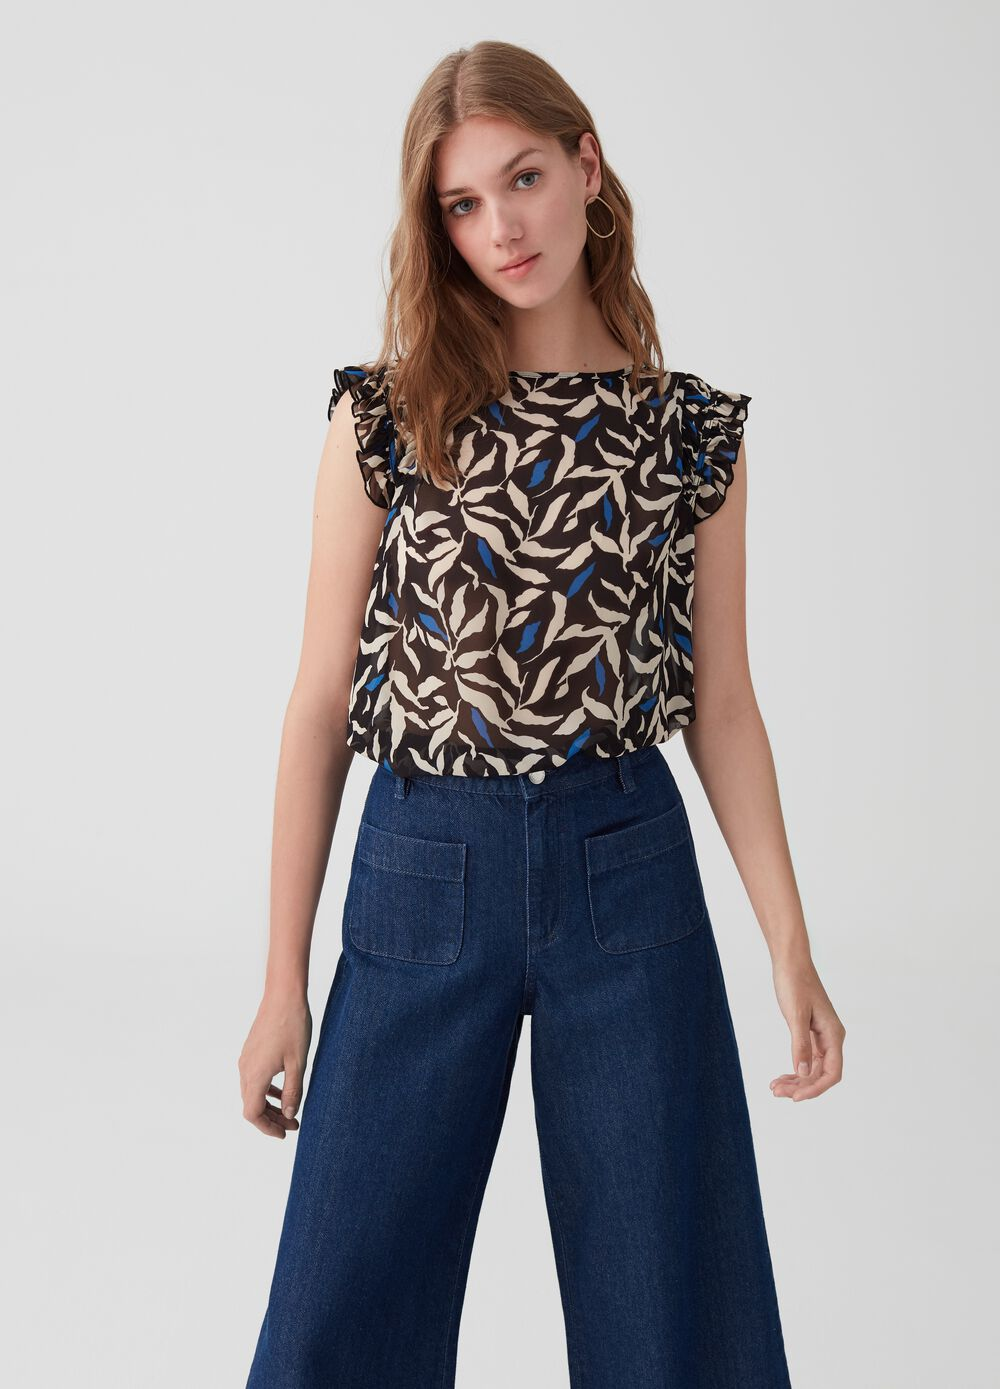 Blouse with cap sleeves and ruches.